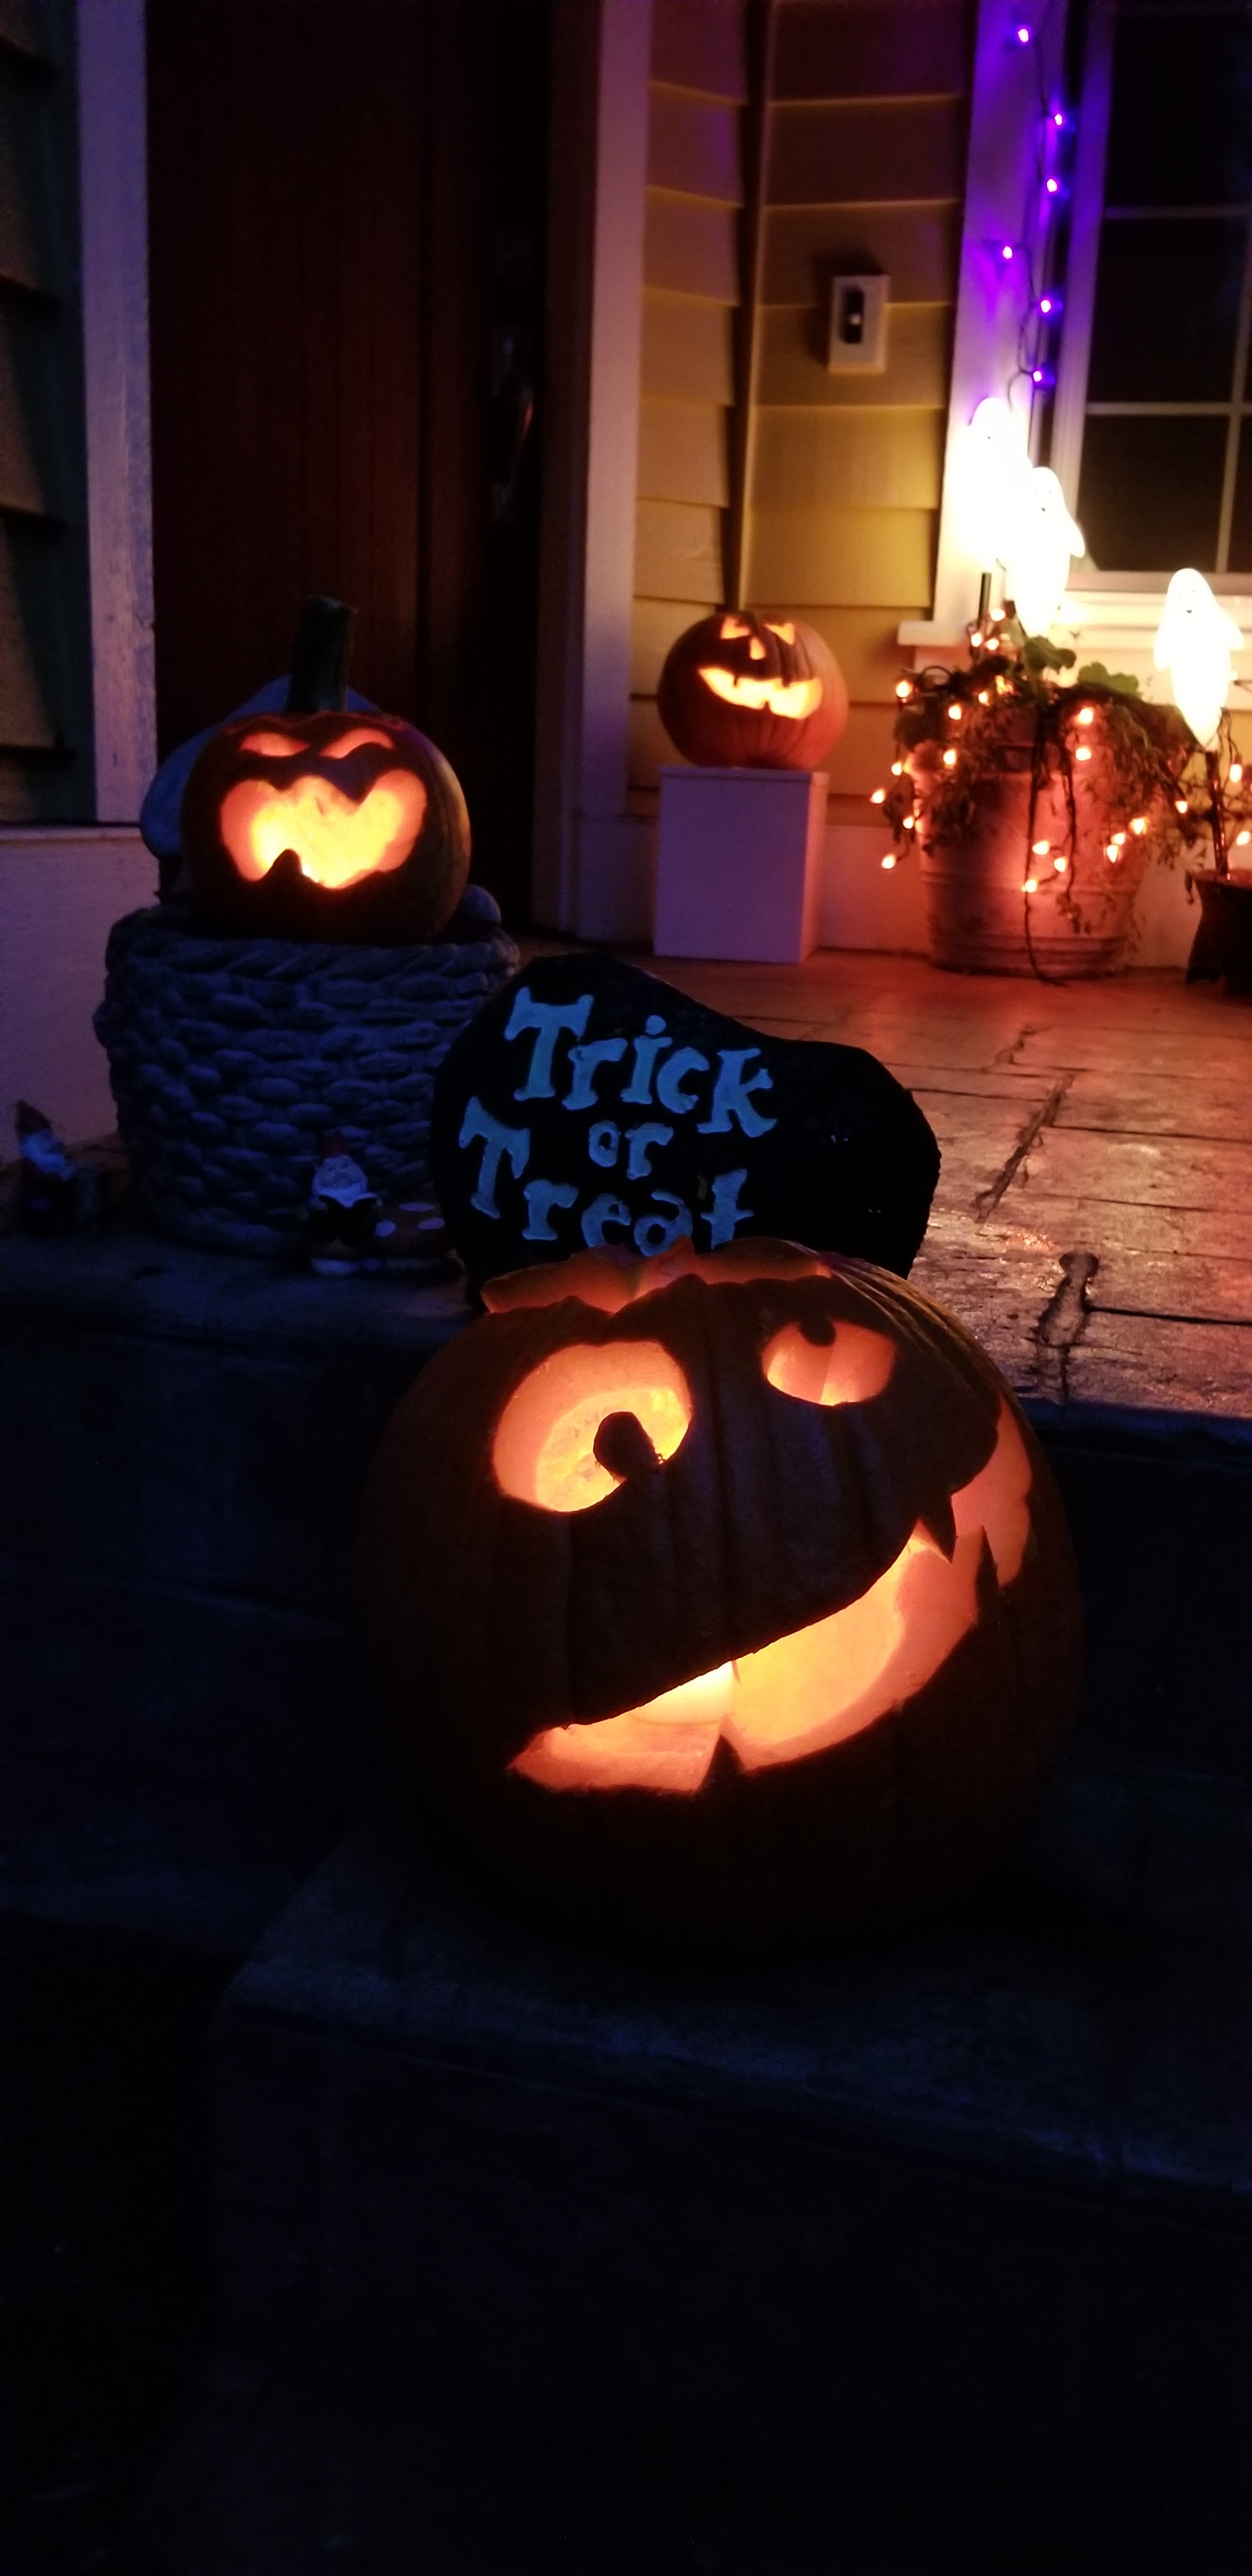 We take our jack-o'-lanterns very seriously at my house on Halloween.